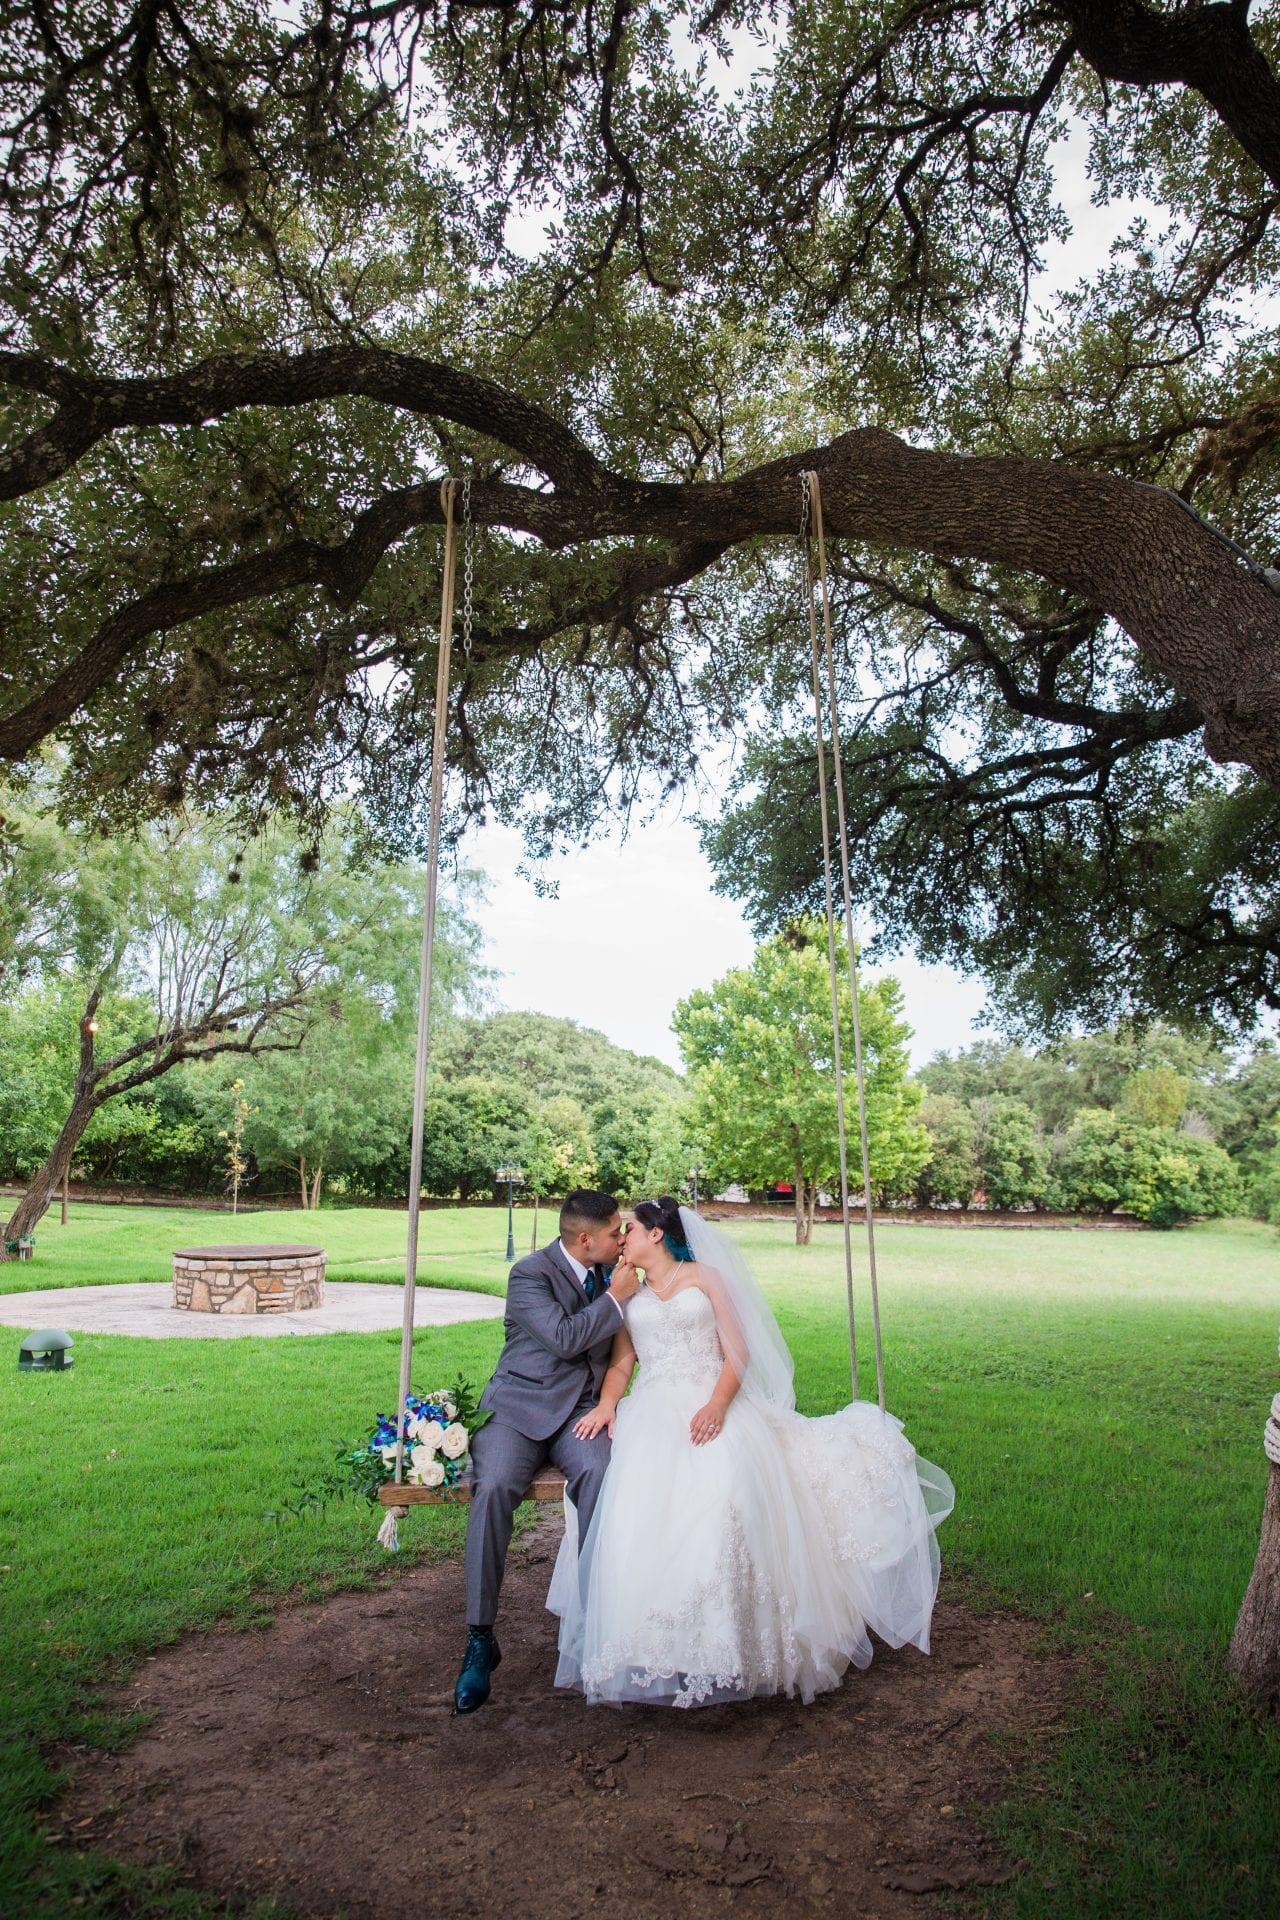 Alex and Adrien Wedding at The Gardens at Old Town swing